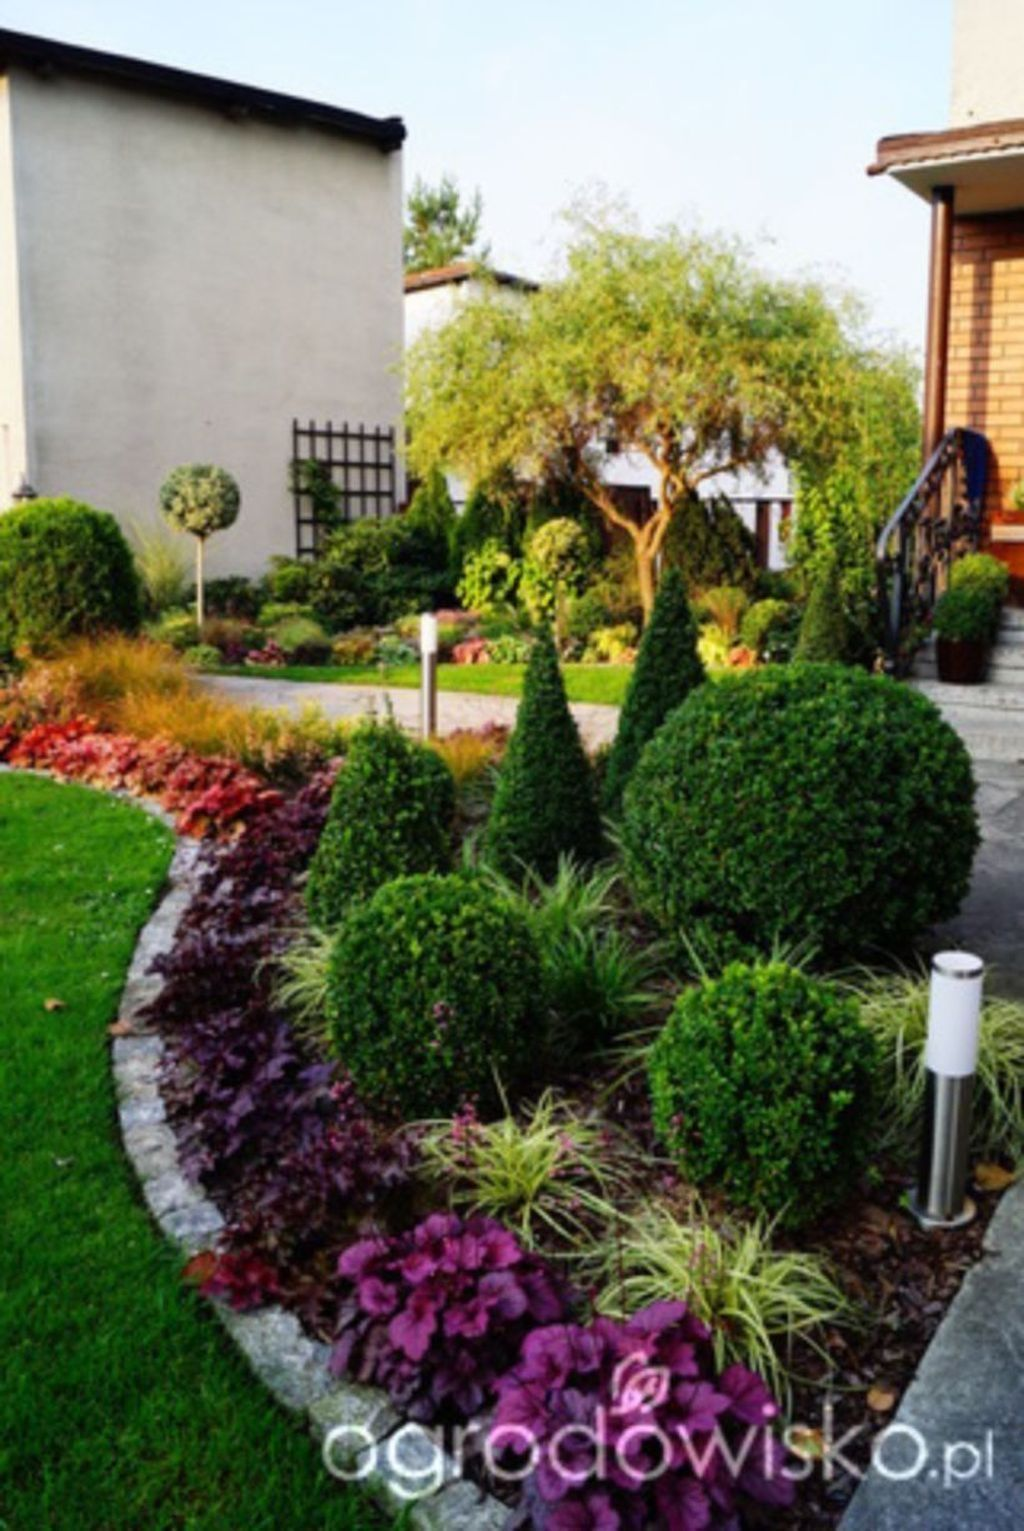 99 Beautiful Garden Design Ideas On A Budget | Gardens, Landscaping ...